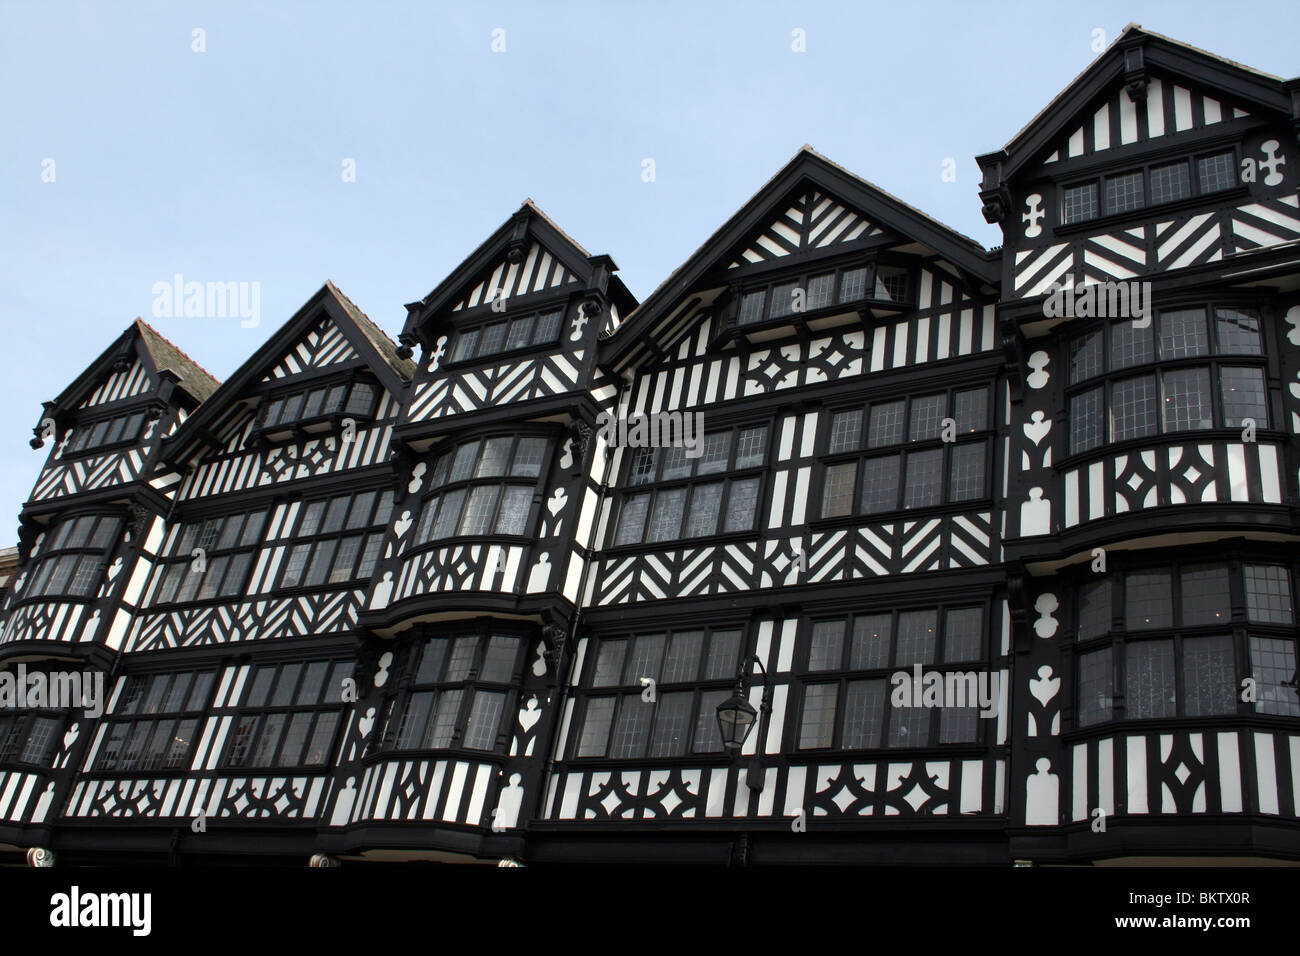 Tudor Architecture tudor architecture stock photos & tudor architecture stock images